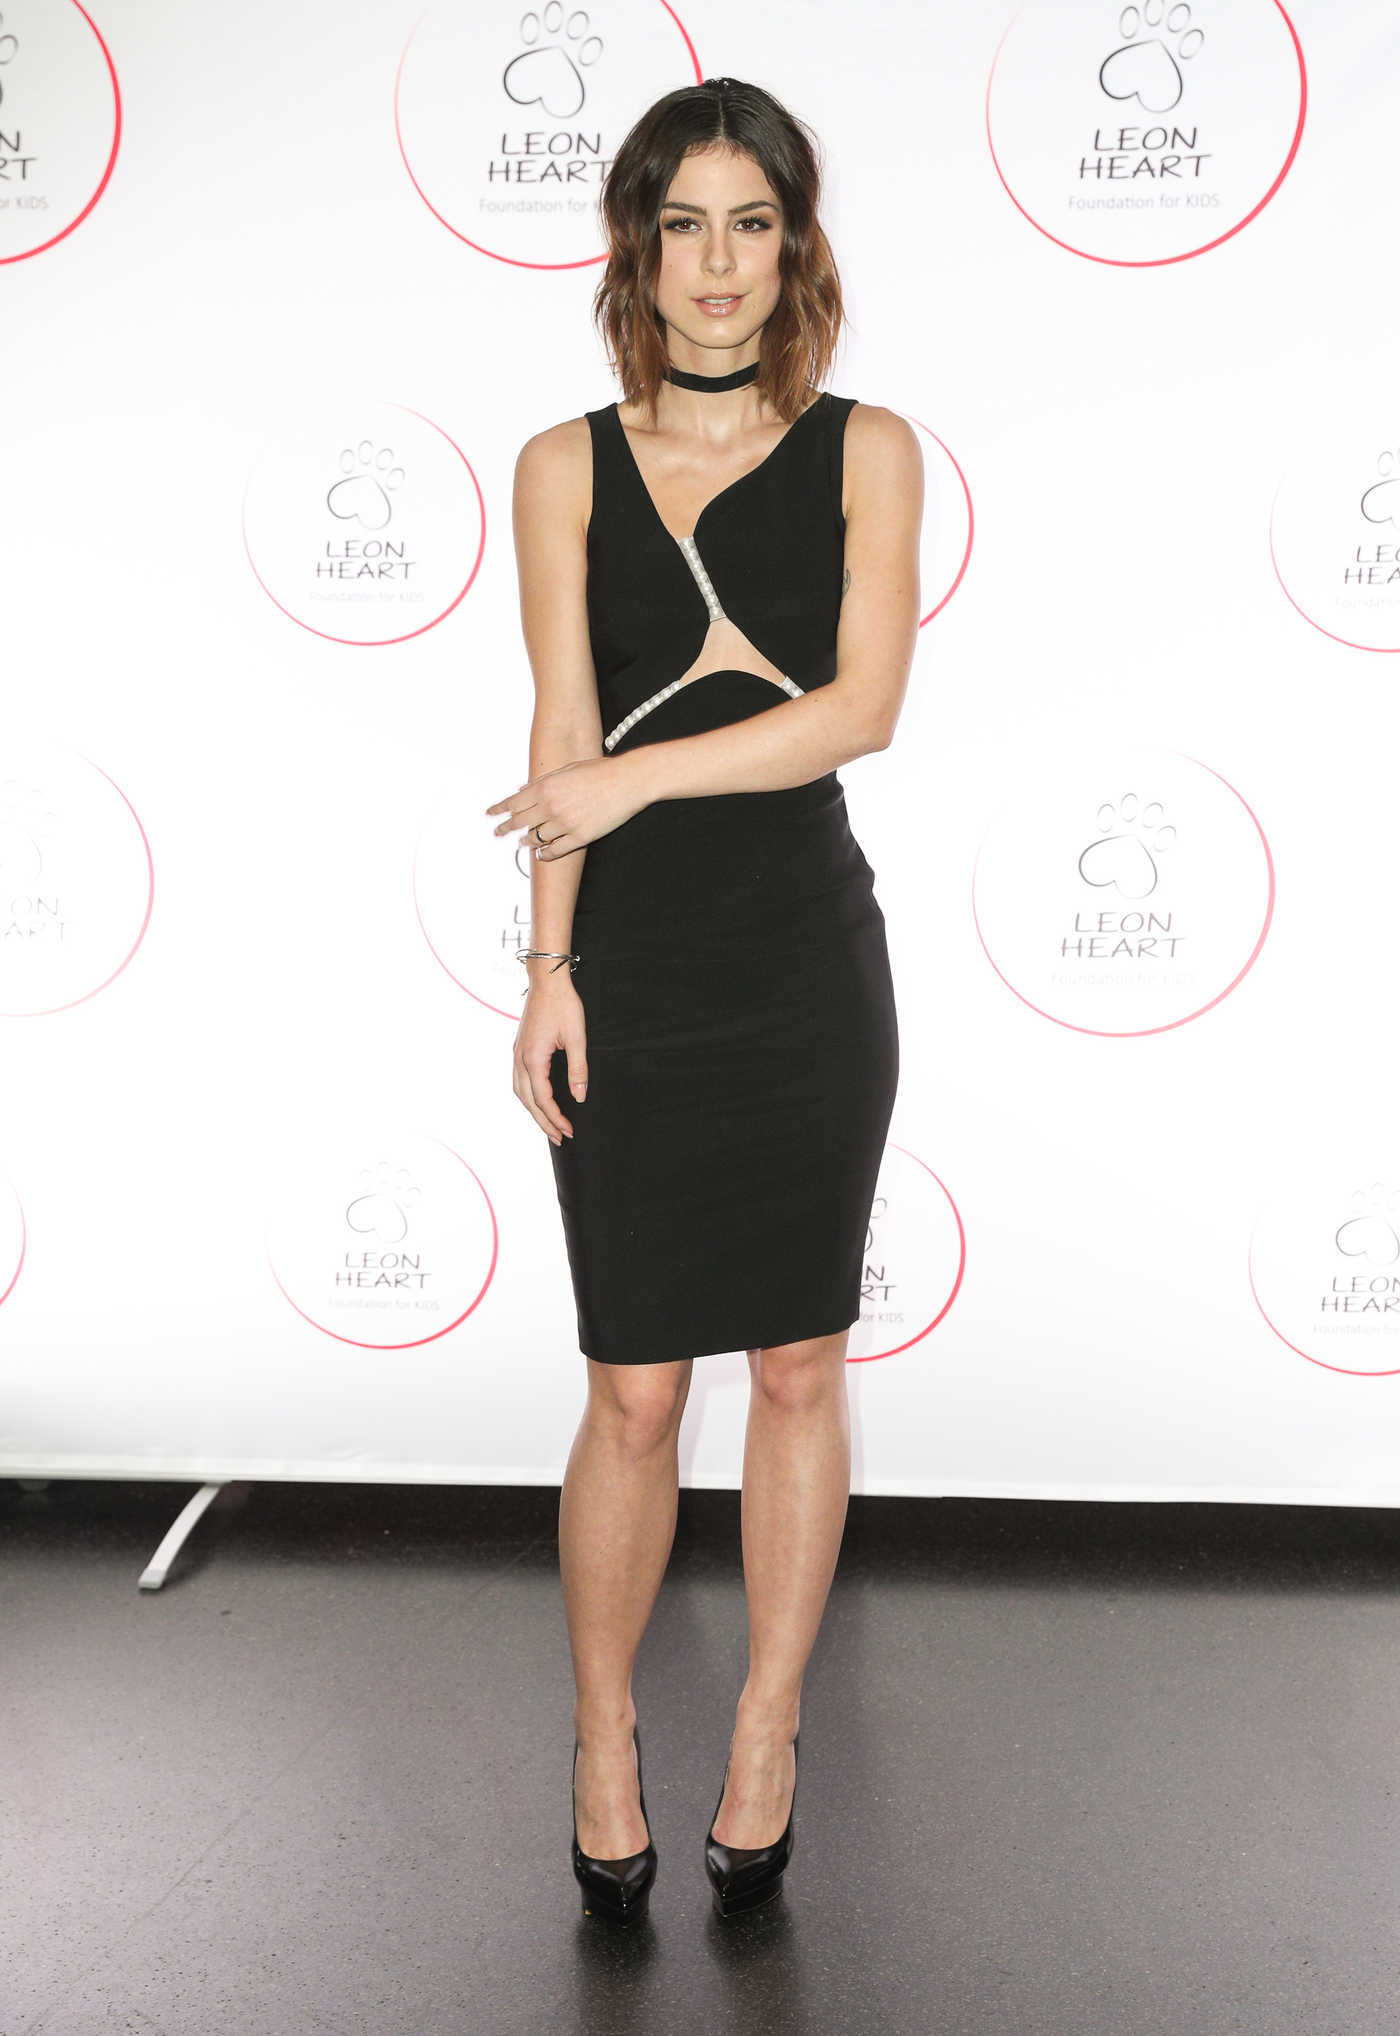 Lena Meyer-Landrut Was Seen at the Leon Heart Foundation Charity Dinner in Berlin 10/28/2016